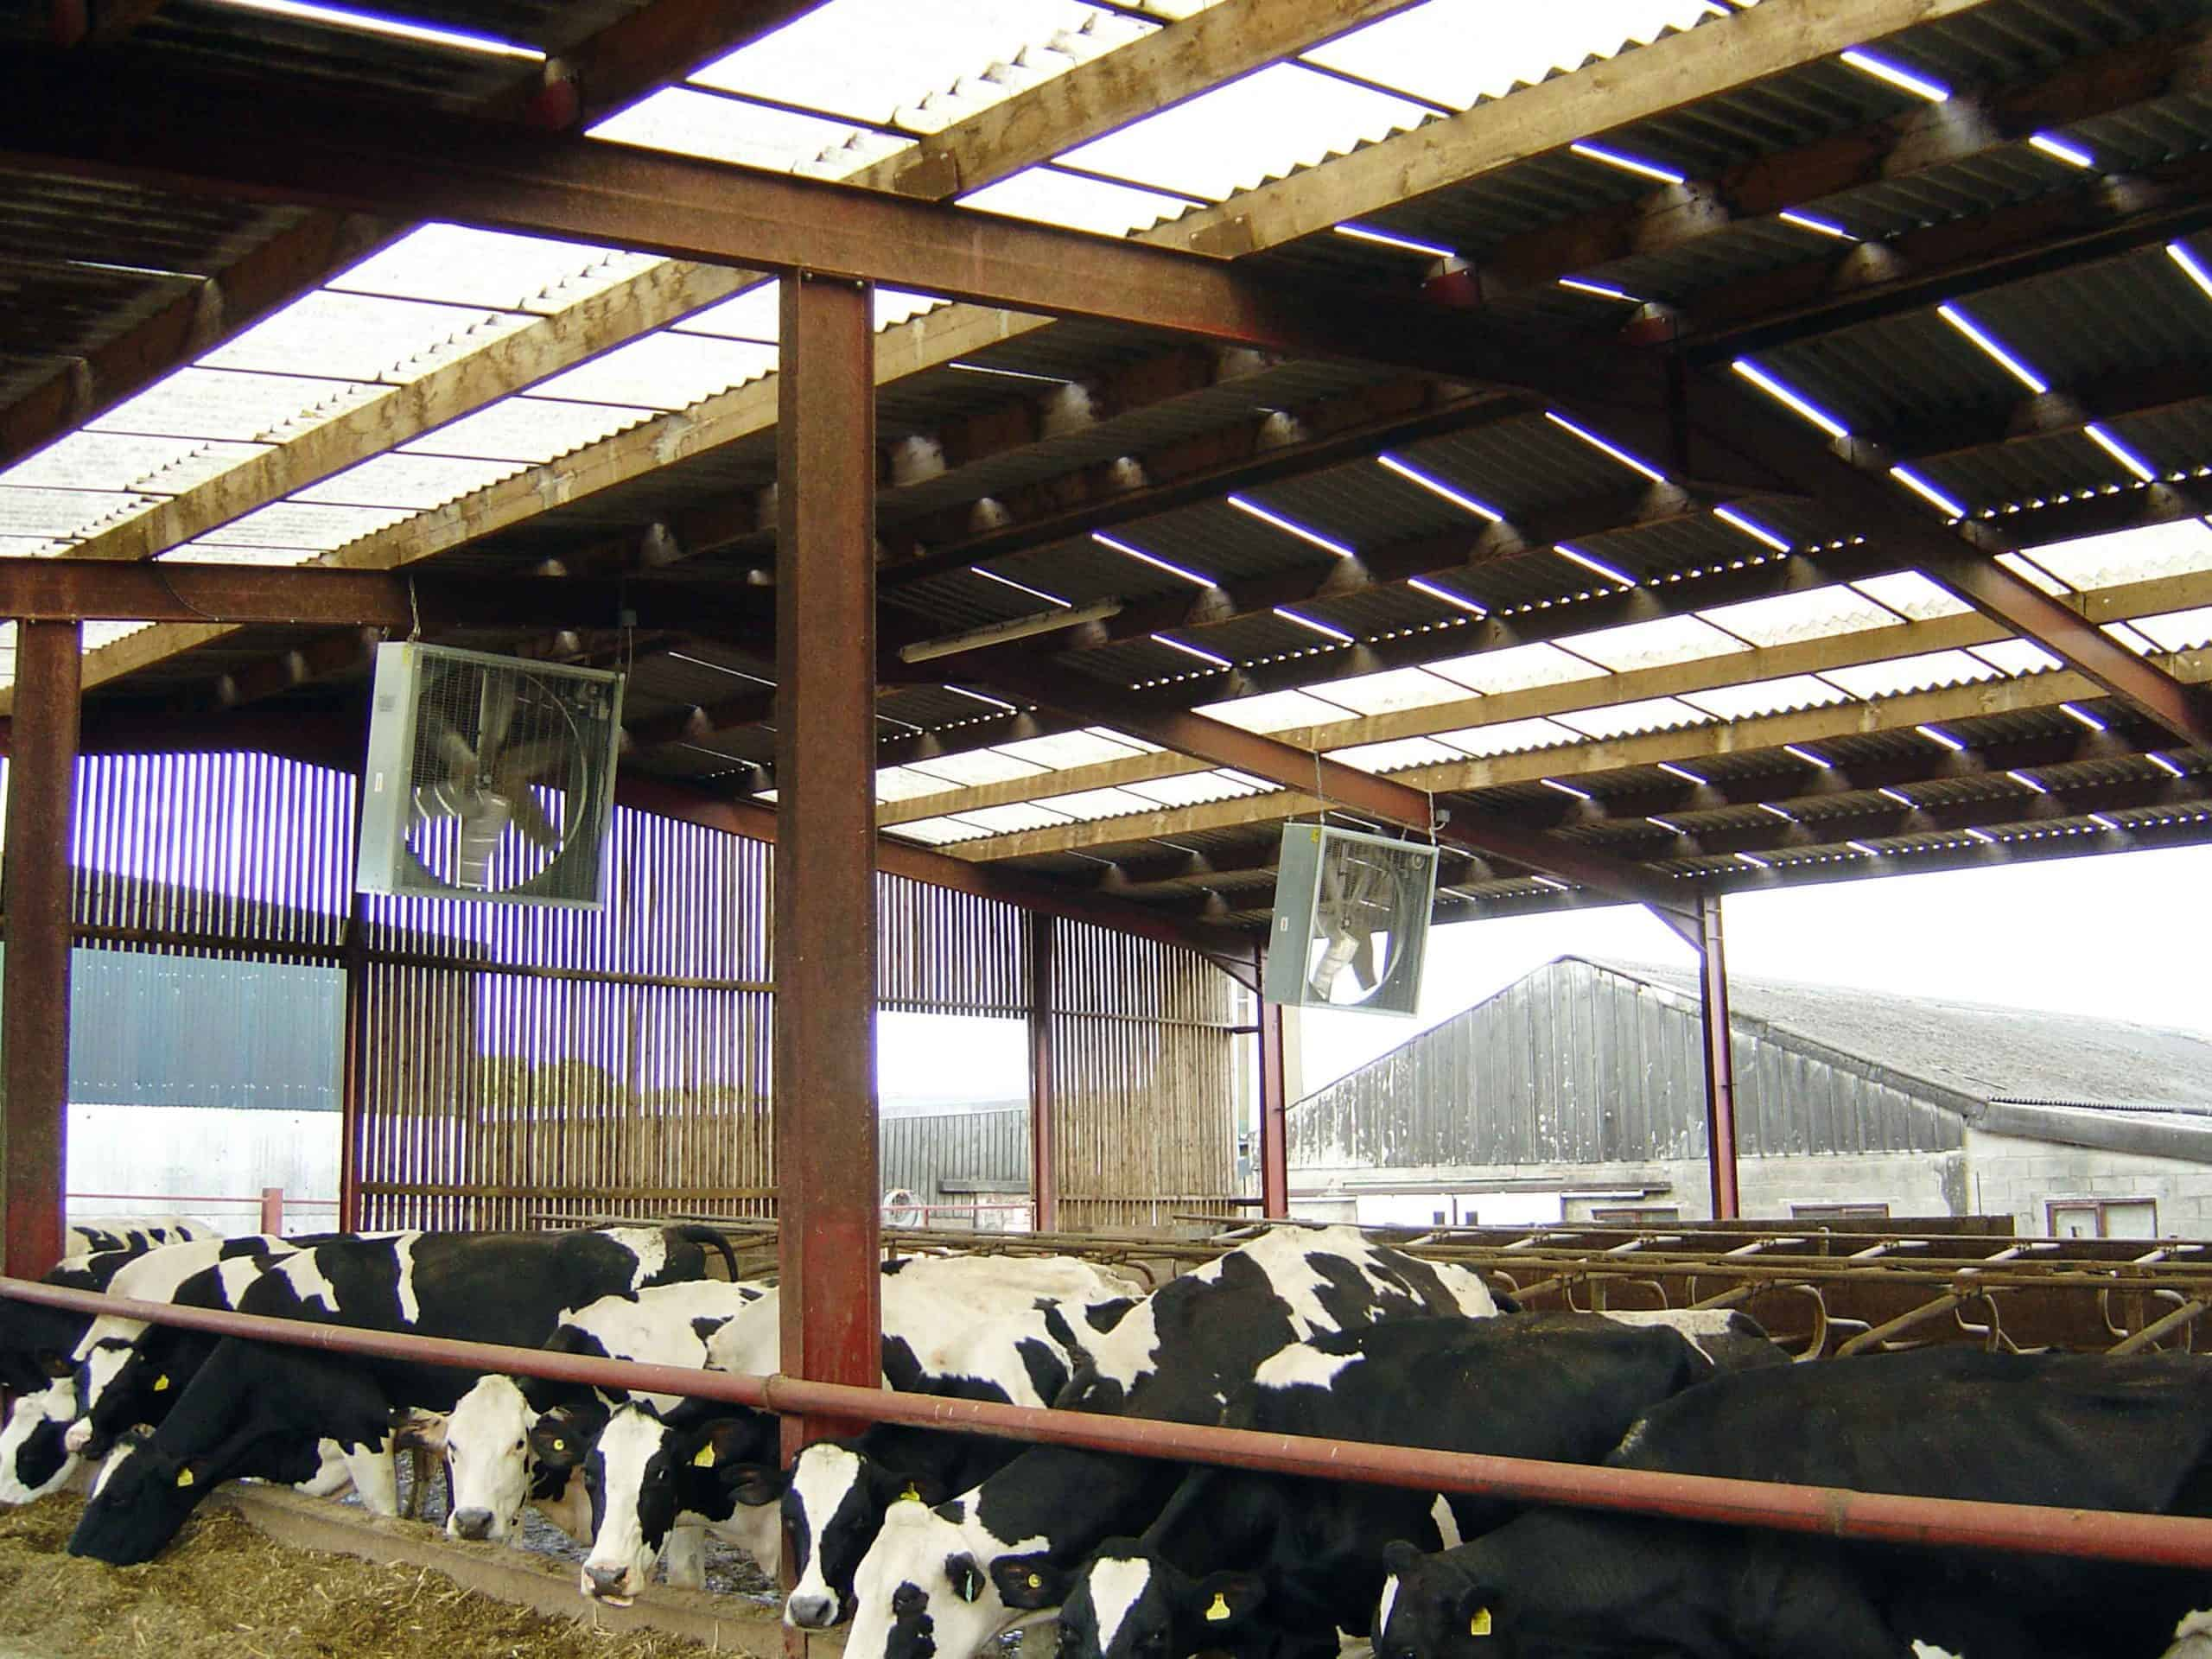 livestock building ventilation system helps reduce heat stress